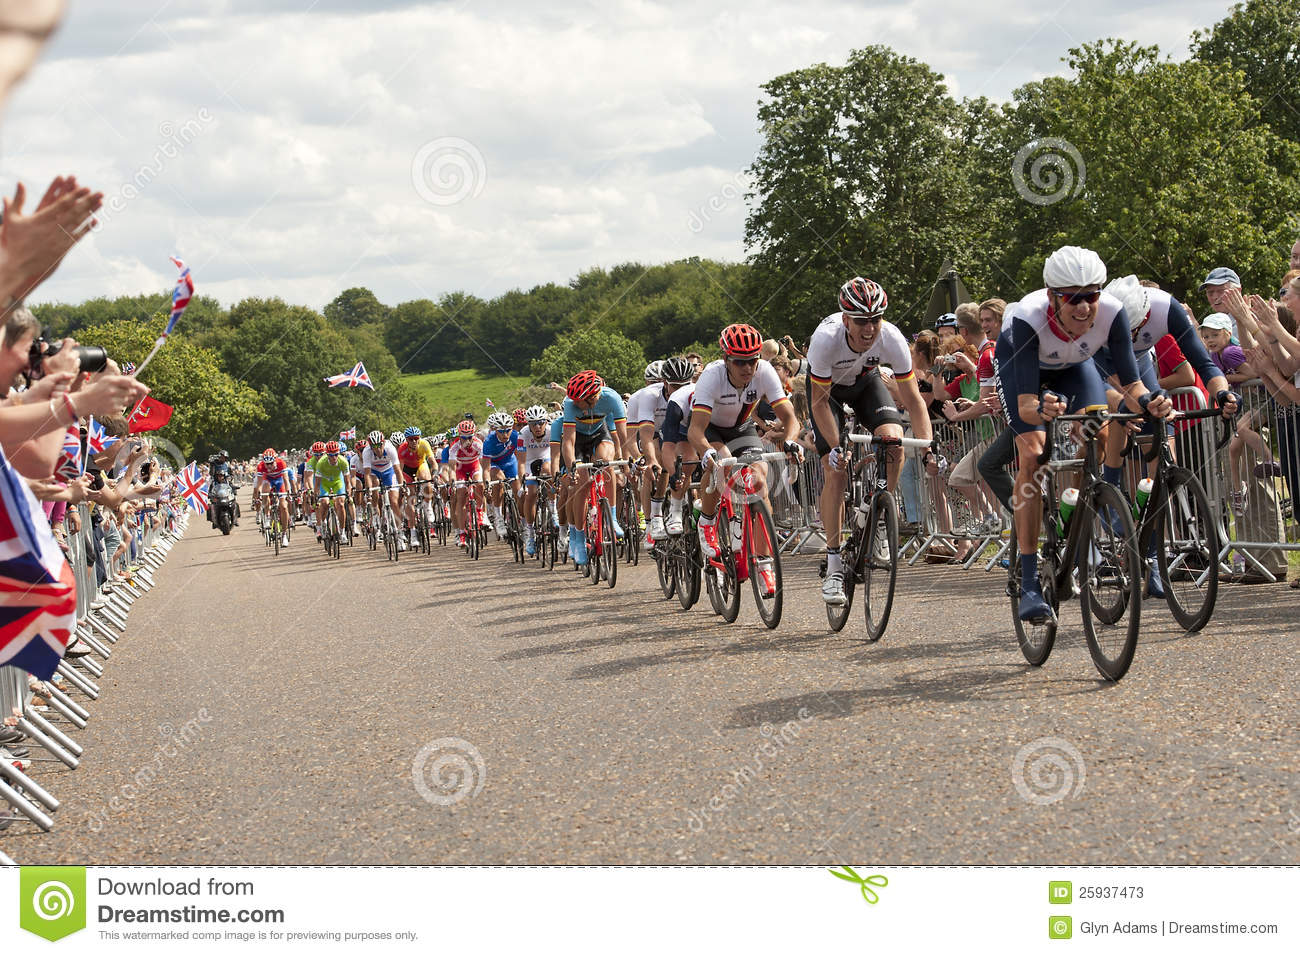 f7c2ad5bd64 London/ UK-JULY 28, 2012; Winner of THE TOUR DE FRANCEBradley Wiggens leads  the Peleton through Richmond Park in the mens Olympic cycling event,London  July ...